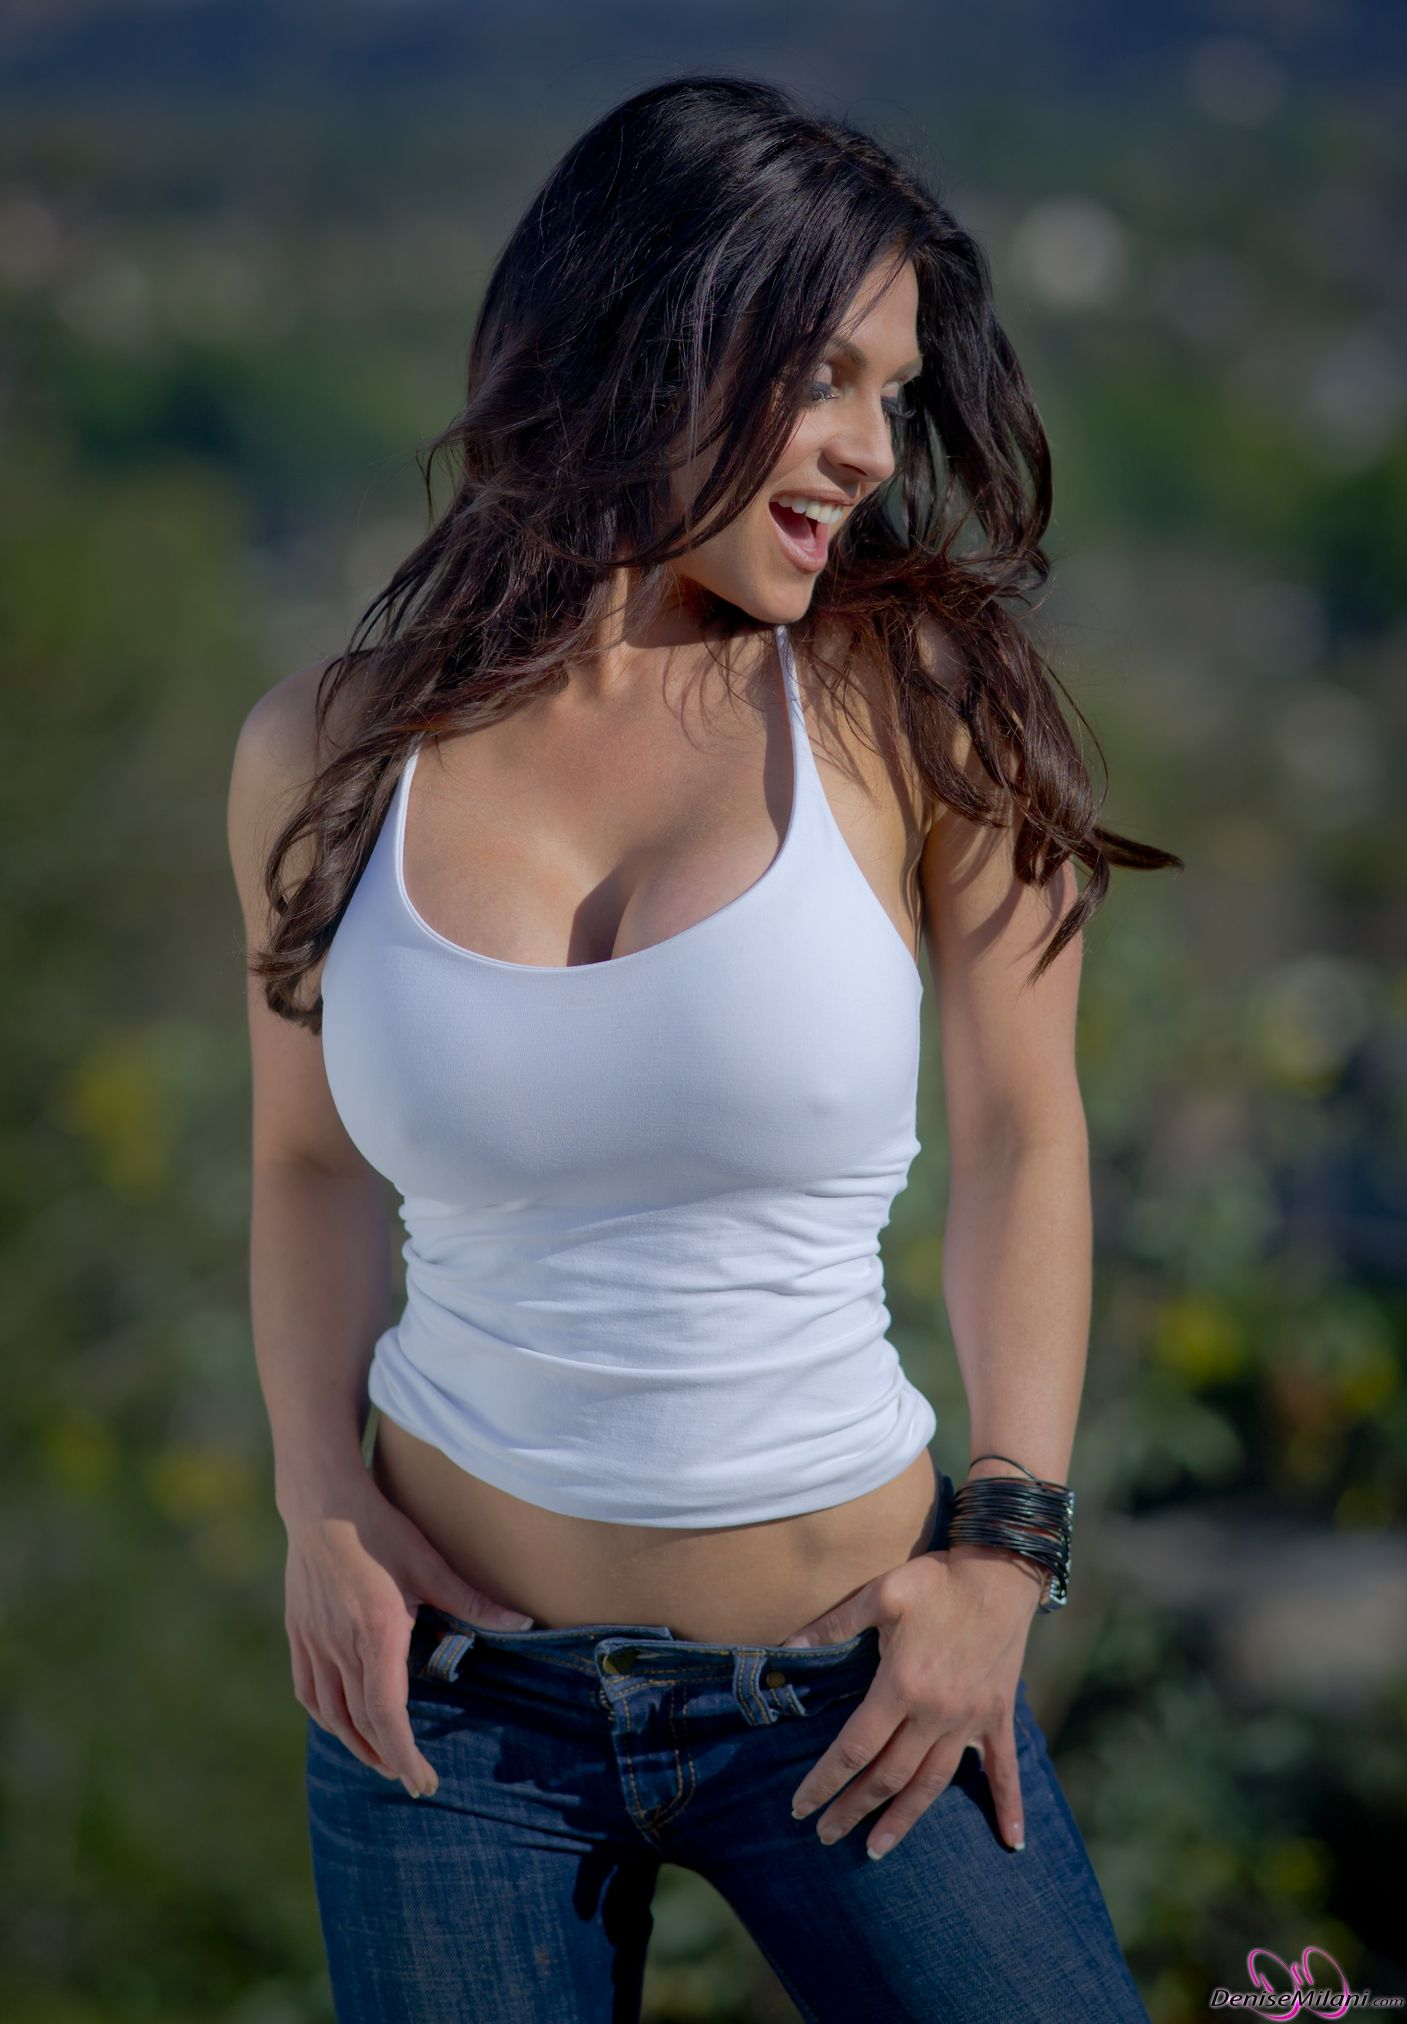 Denise milani country girl